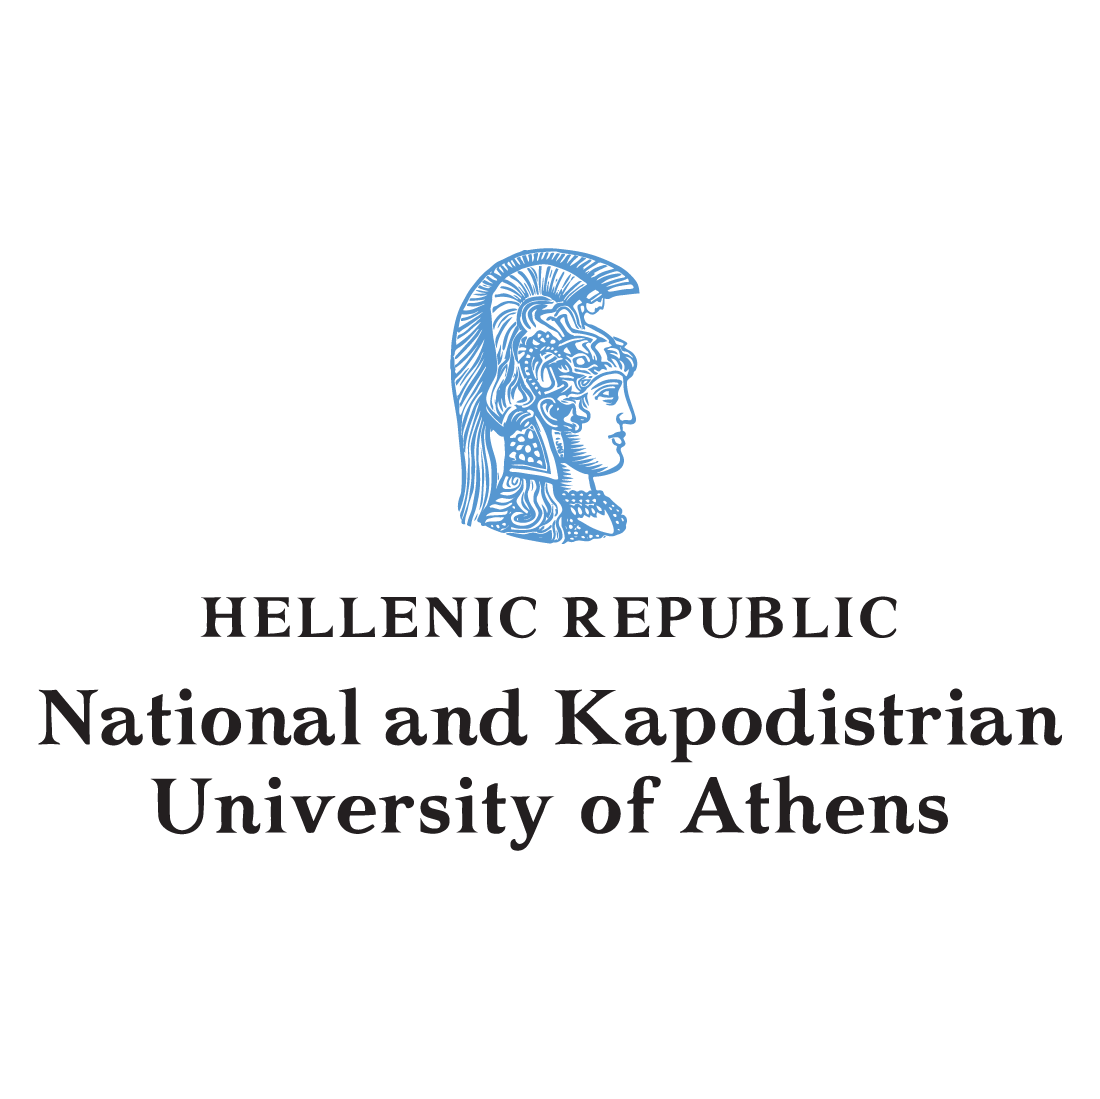 National and Capodistrian University of Athens